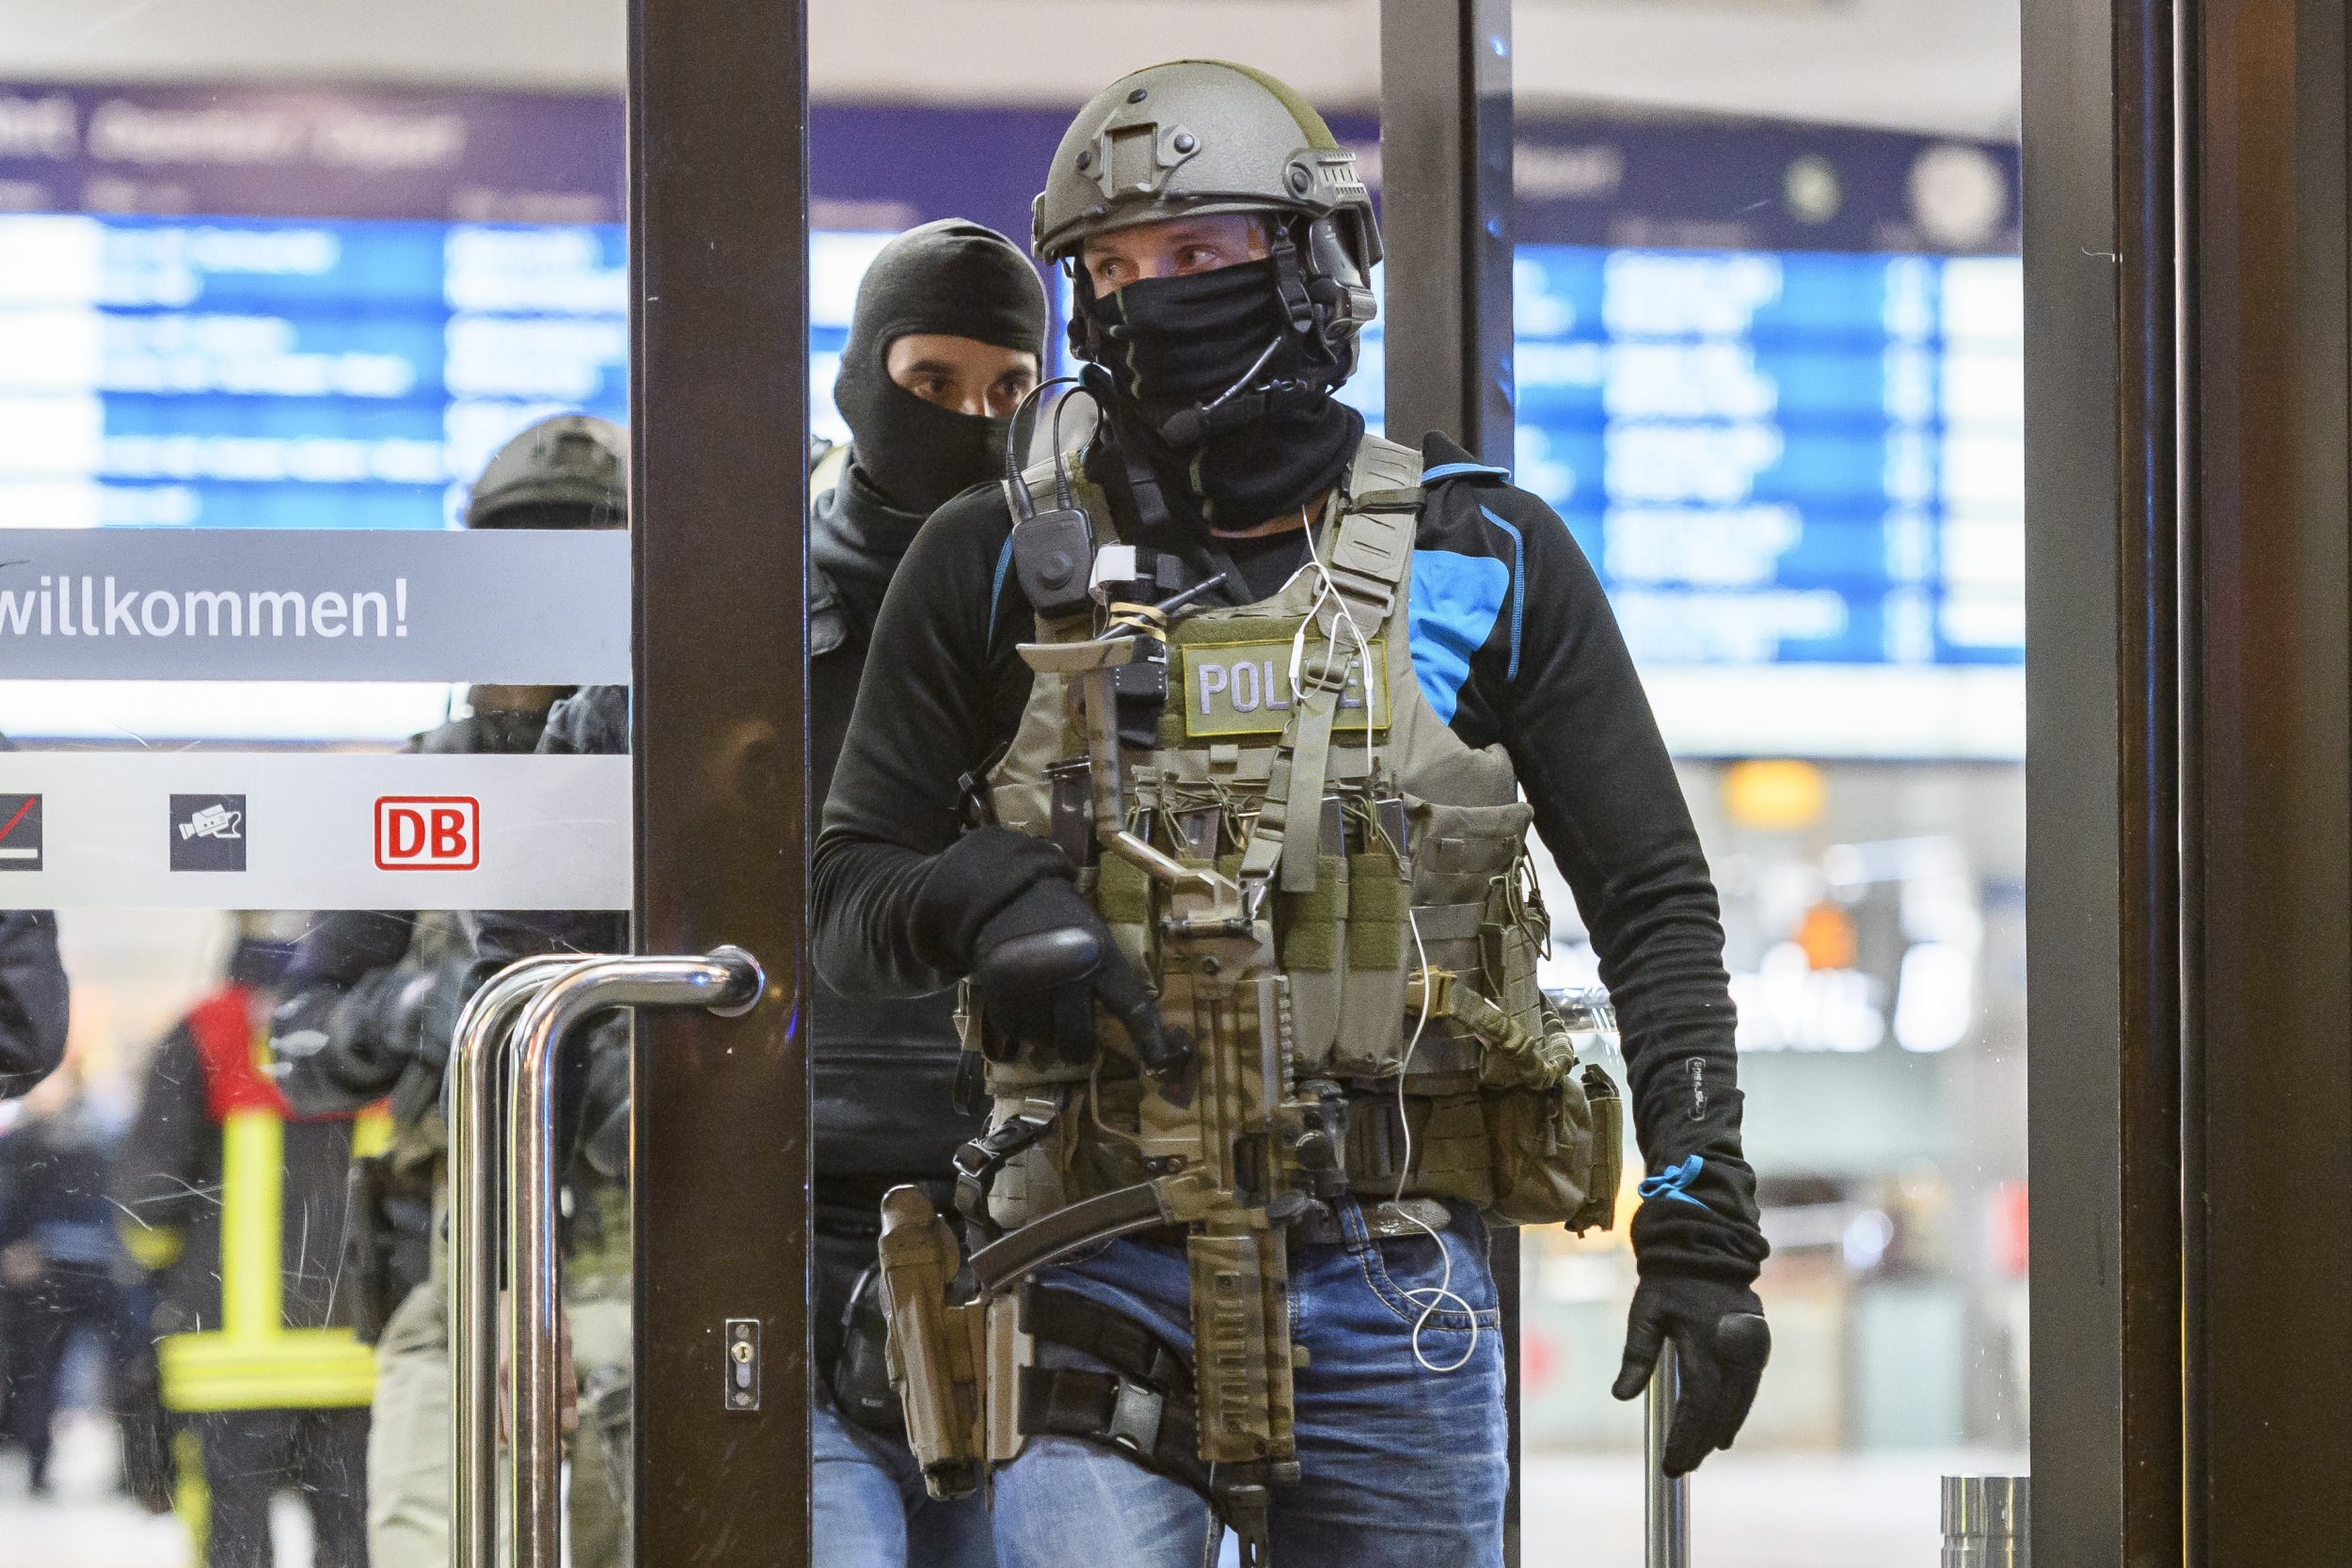 Alleged ISIS fighter in Germany trial claims to be a Turkish spy who prevented an attack on U.S. Consulate